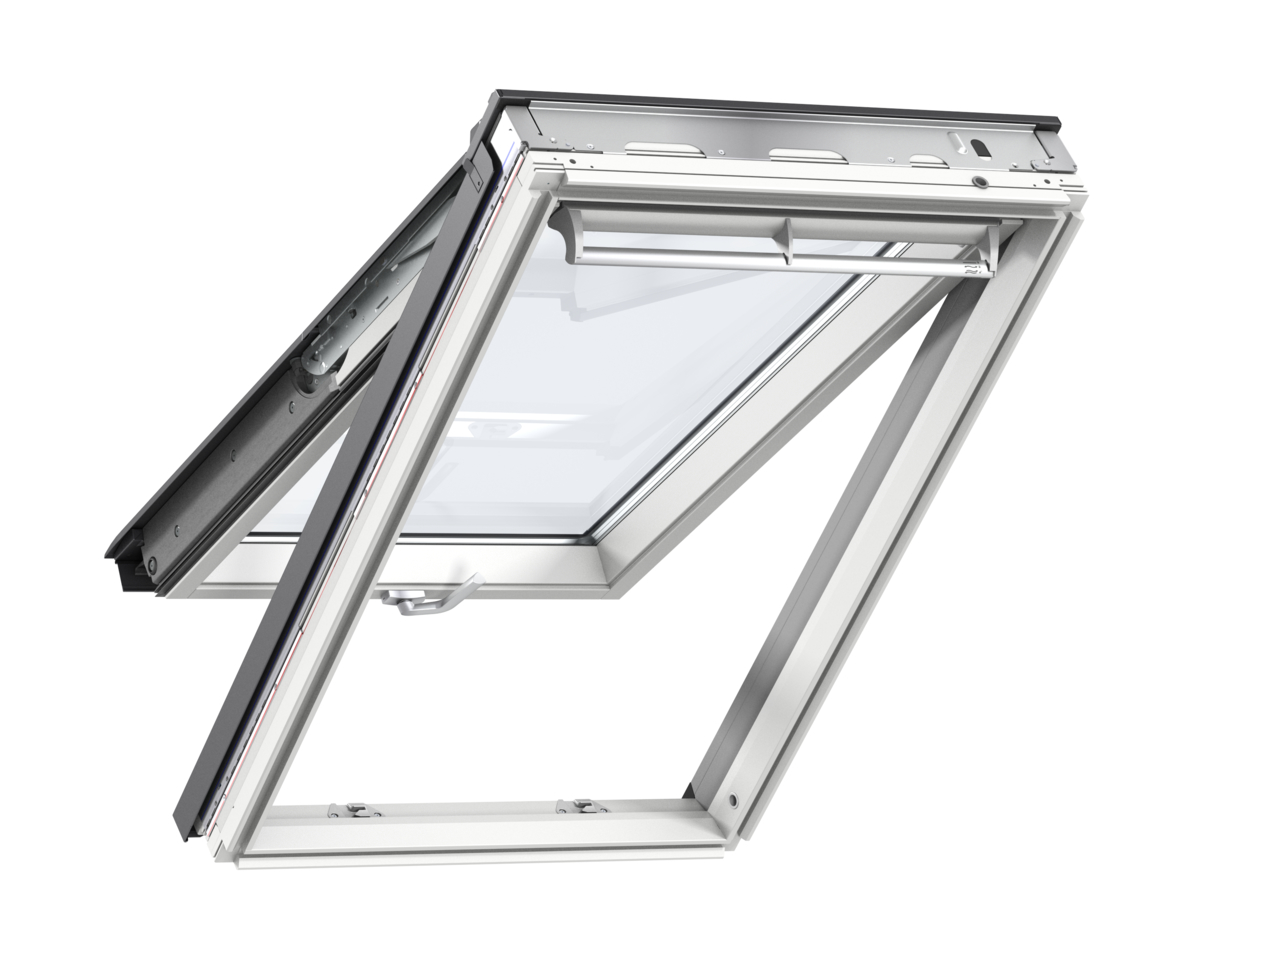 Velux GPL CK06 550 x 1180mm Top Hung 60Pane Roof Window - White Painted